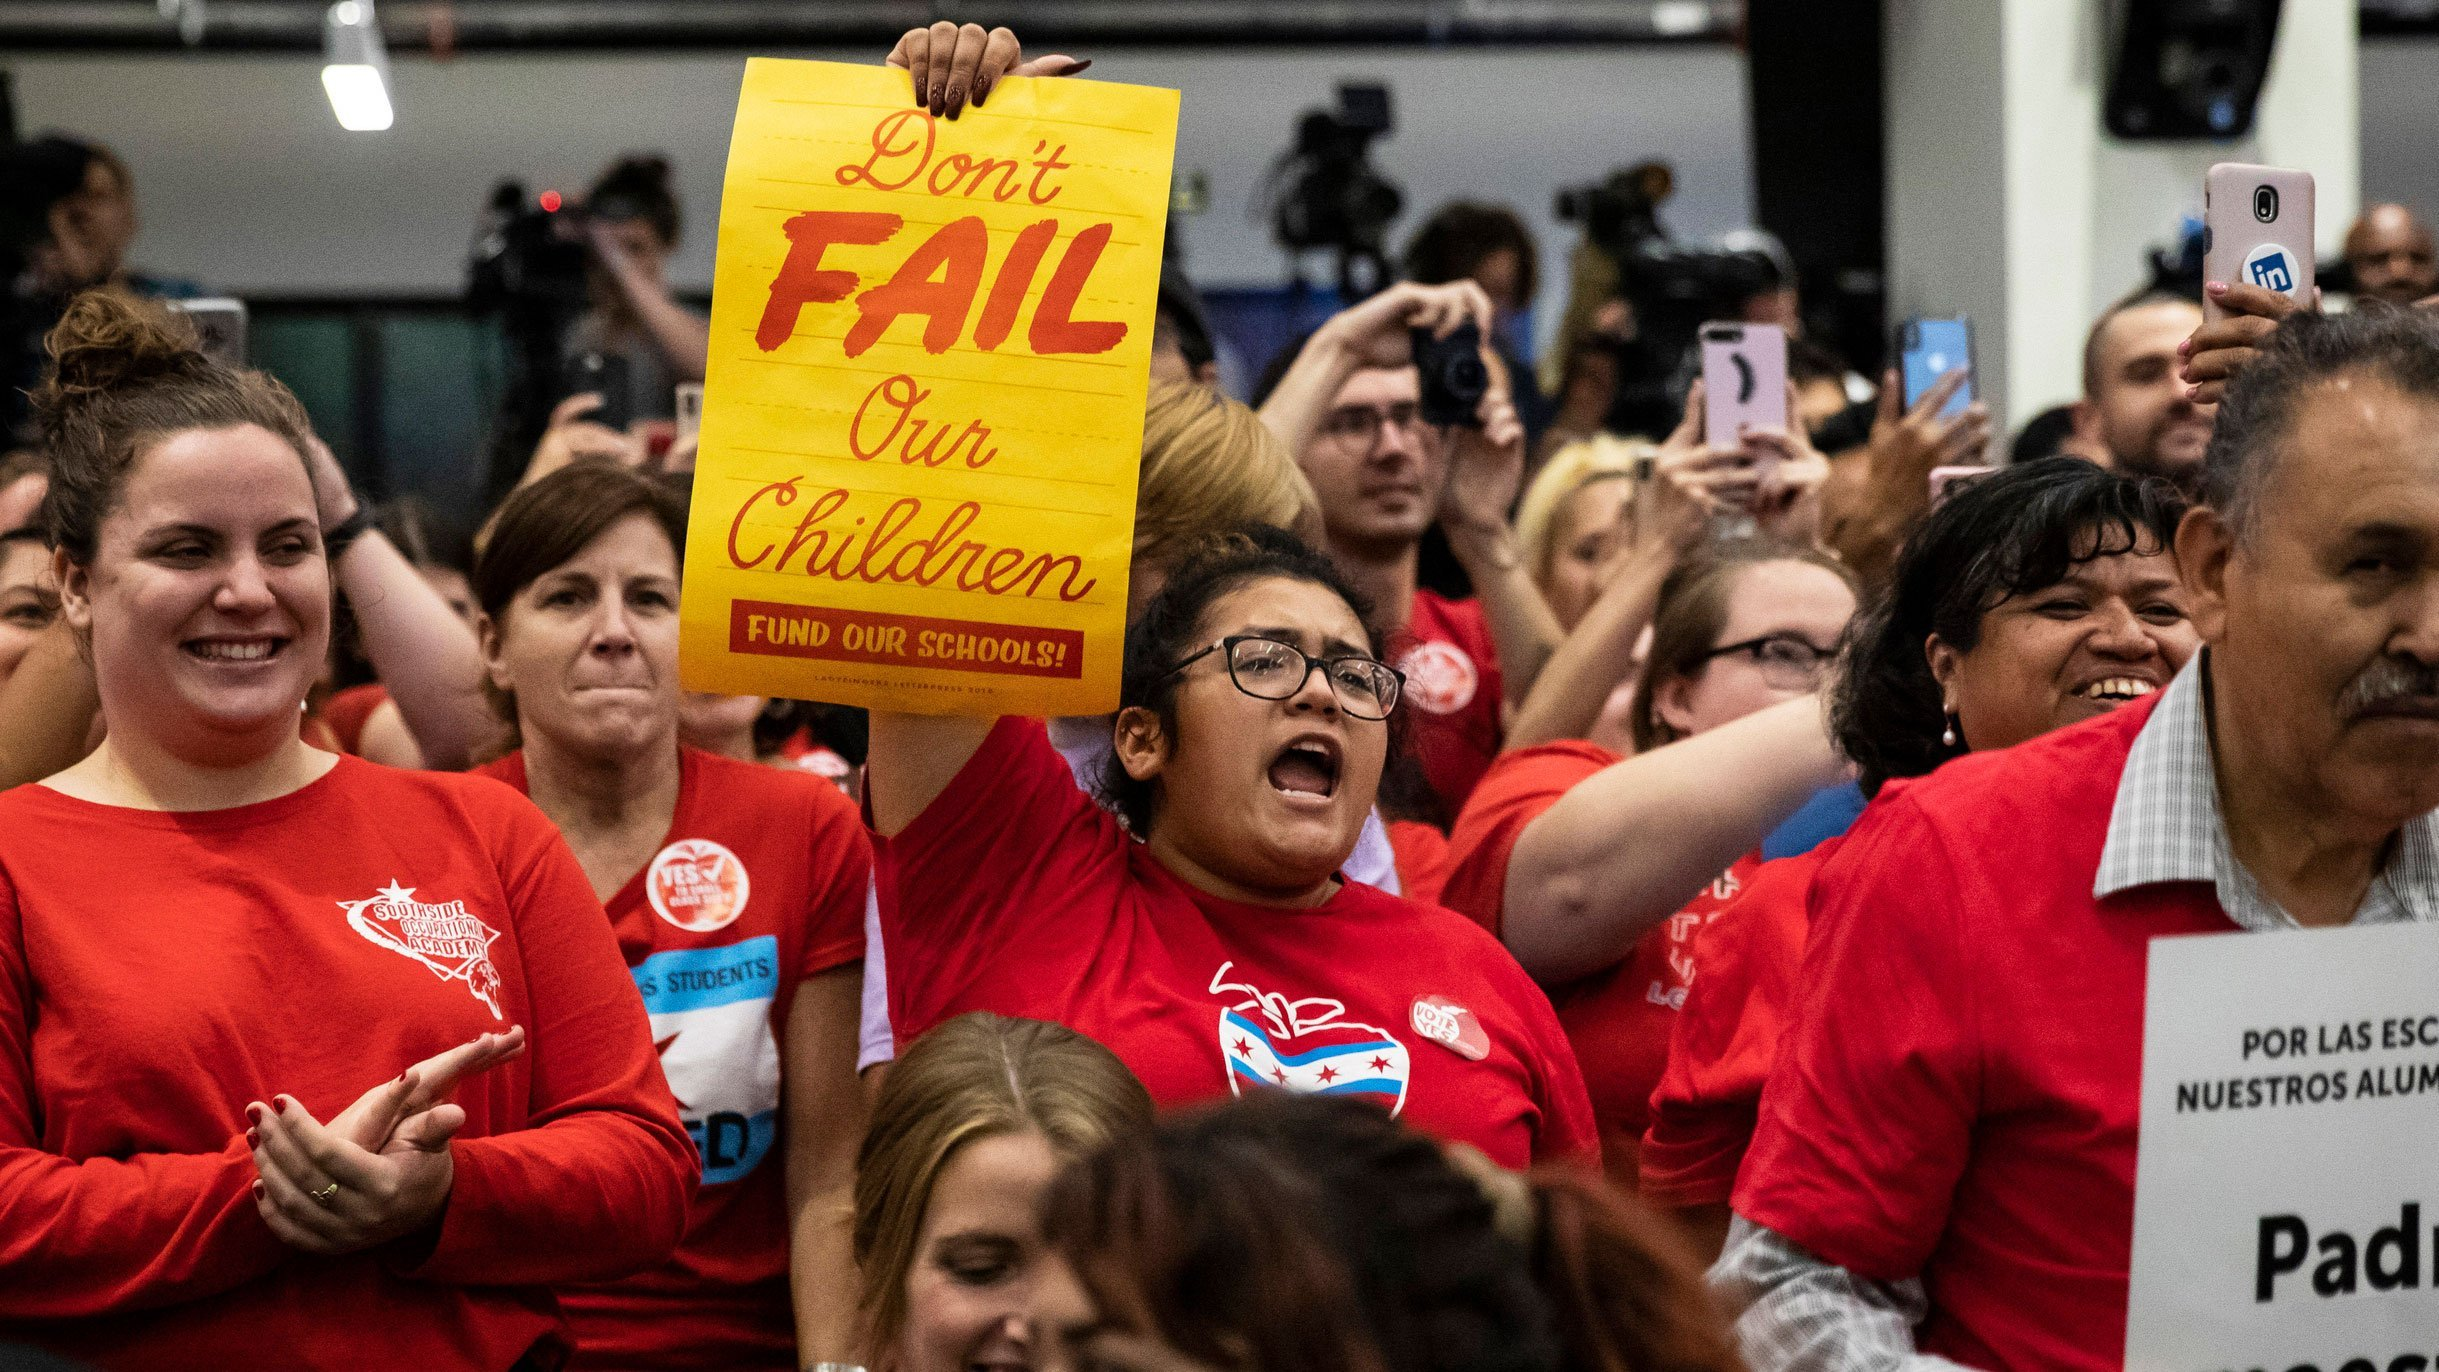 Educators rallied at the Chicago Teachers Union headquarters last month as CPU braced for a strike. (Credit: Ashlee Rezin Garcia/Chicago Sun-Times/AP via CNN Wire)